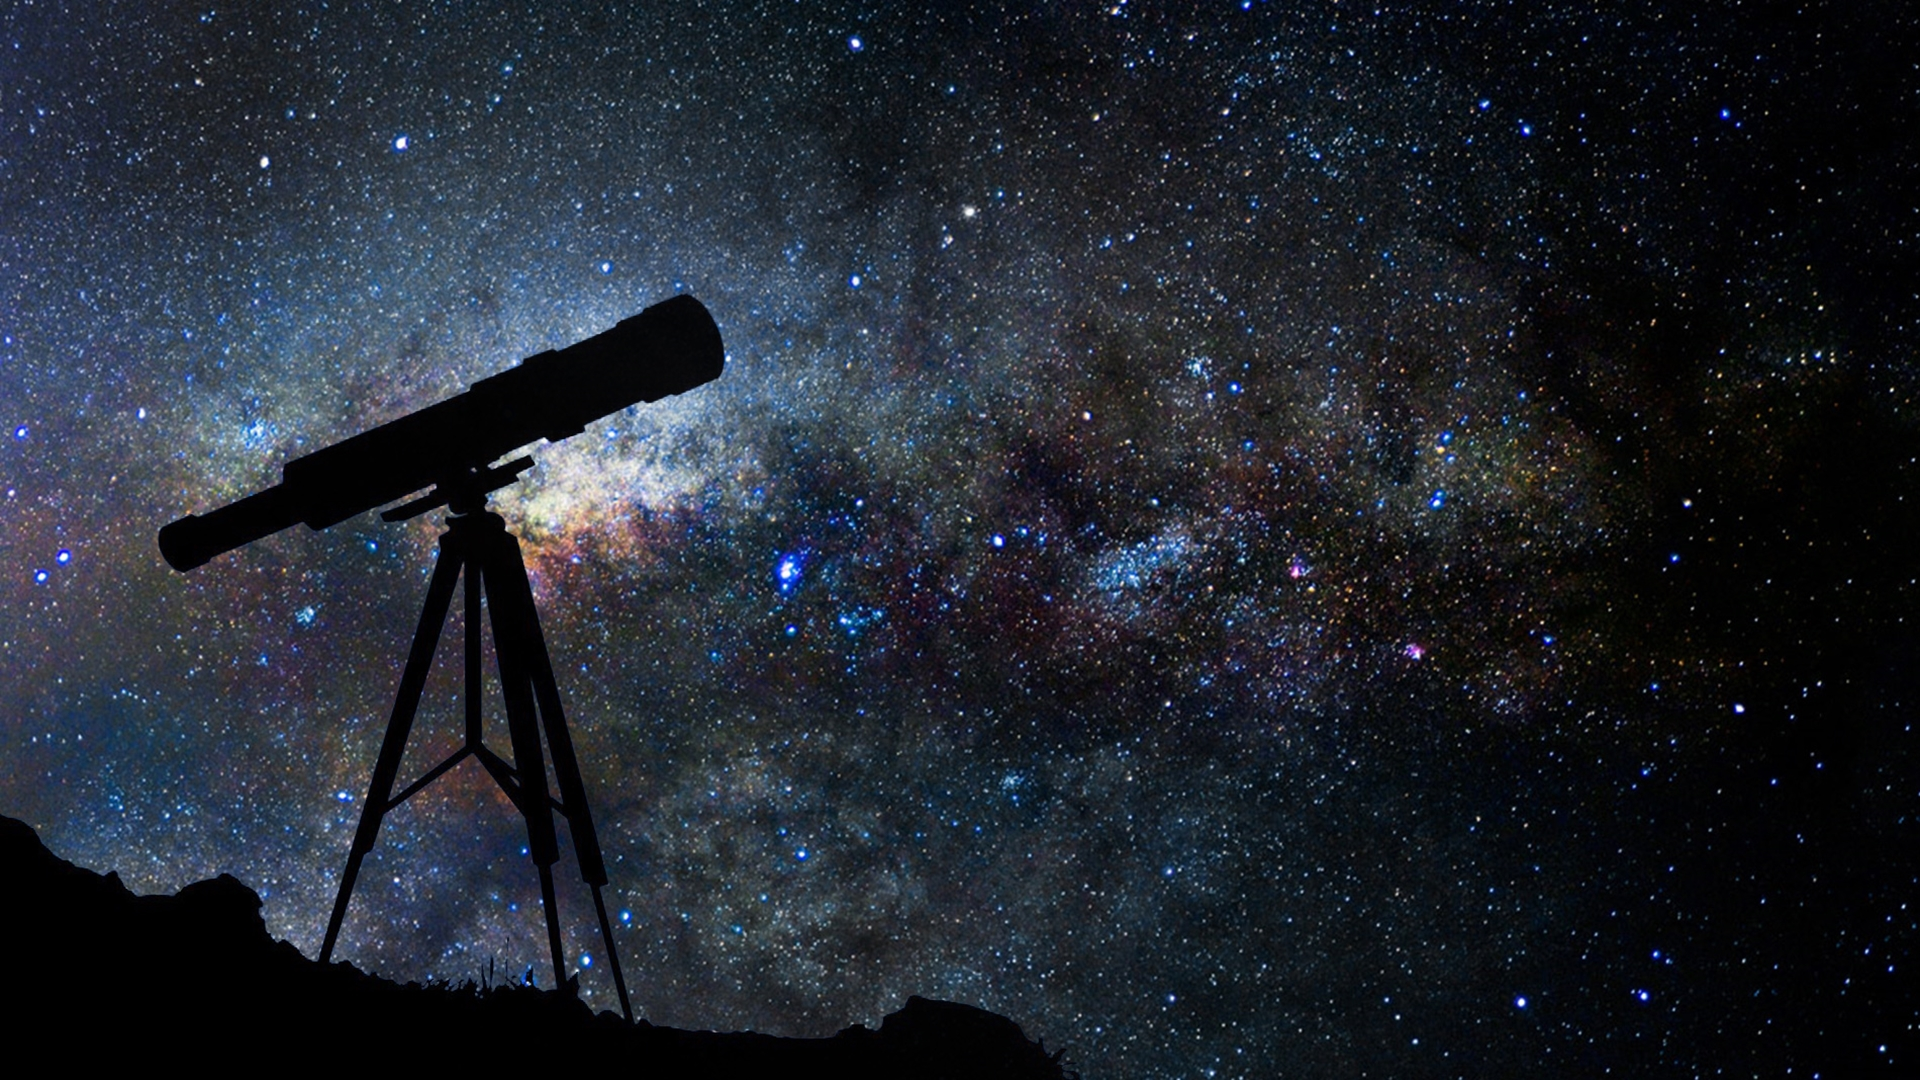 Cool Telescope Wallpaper 39563 1920x1200 px